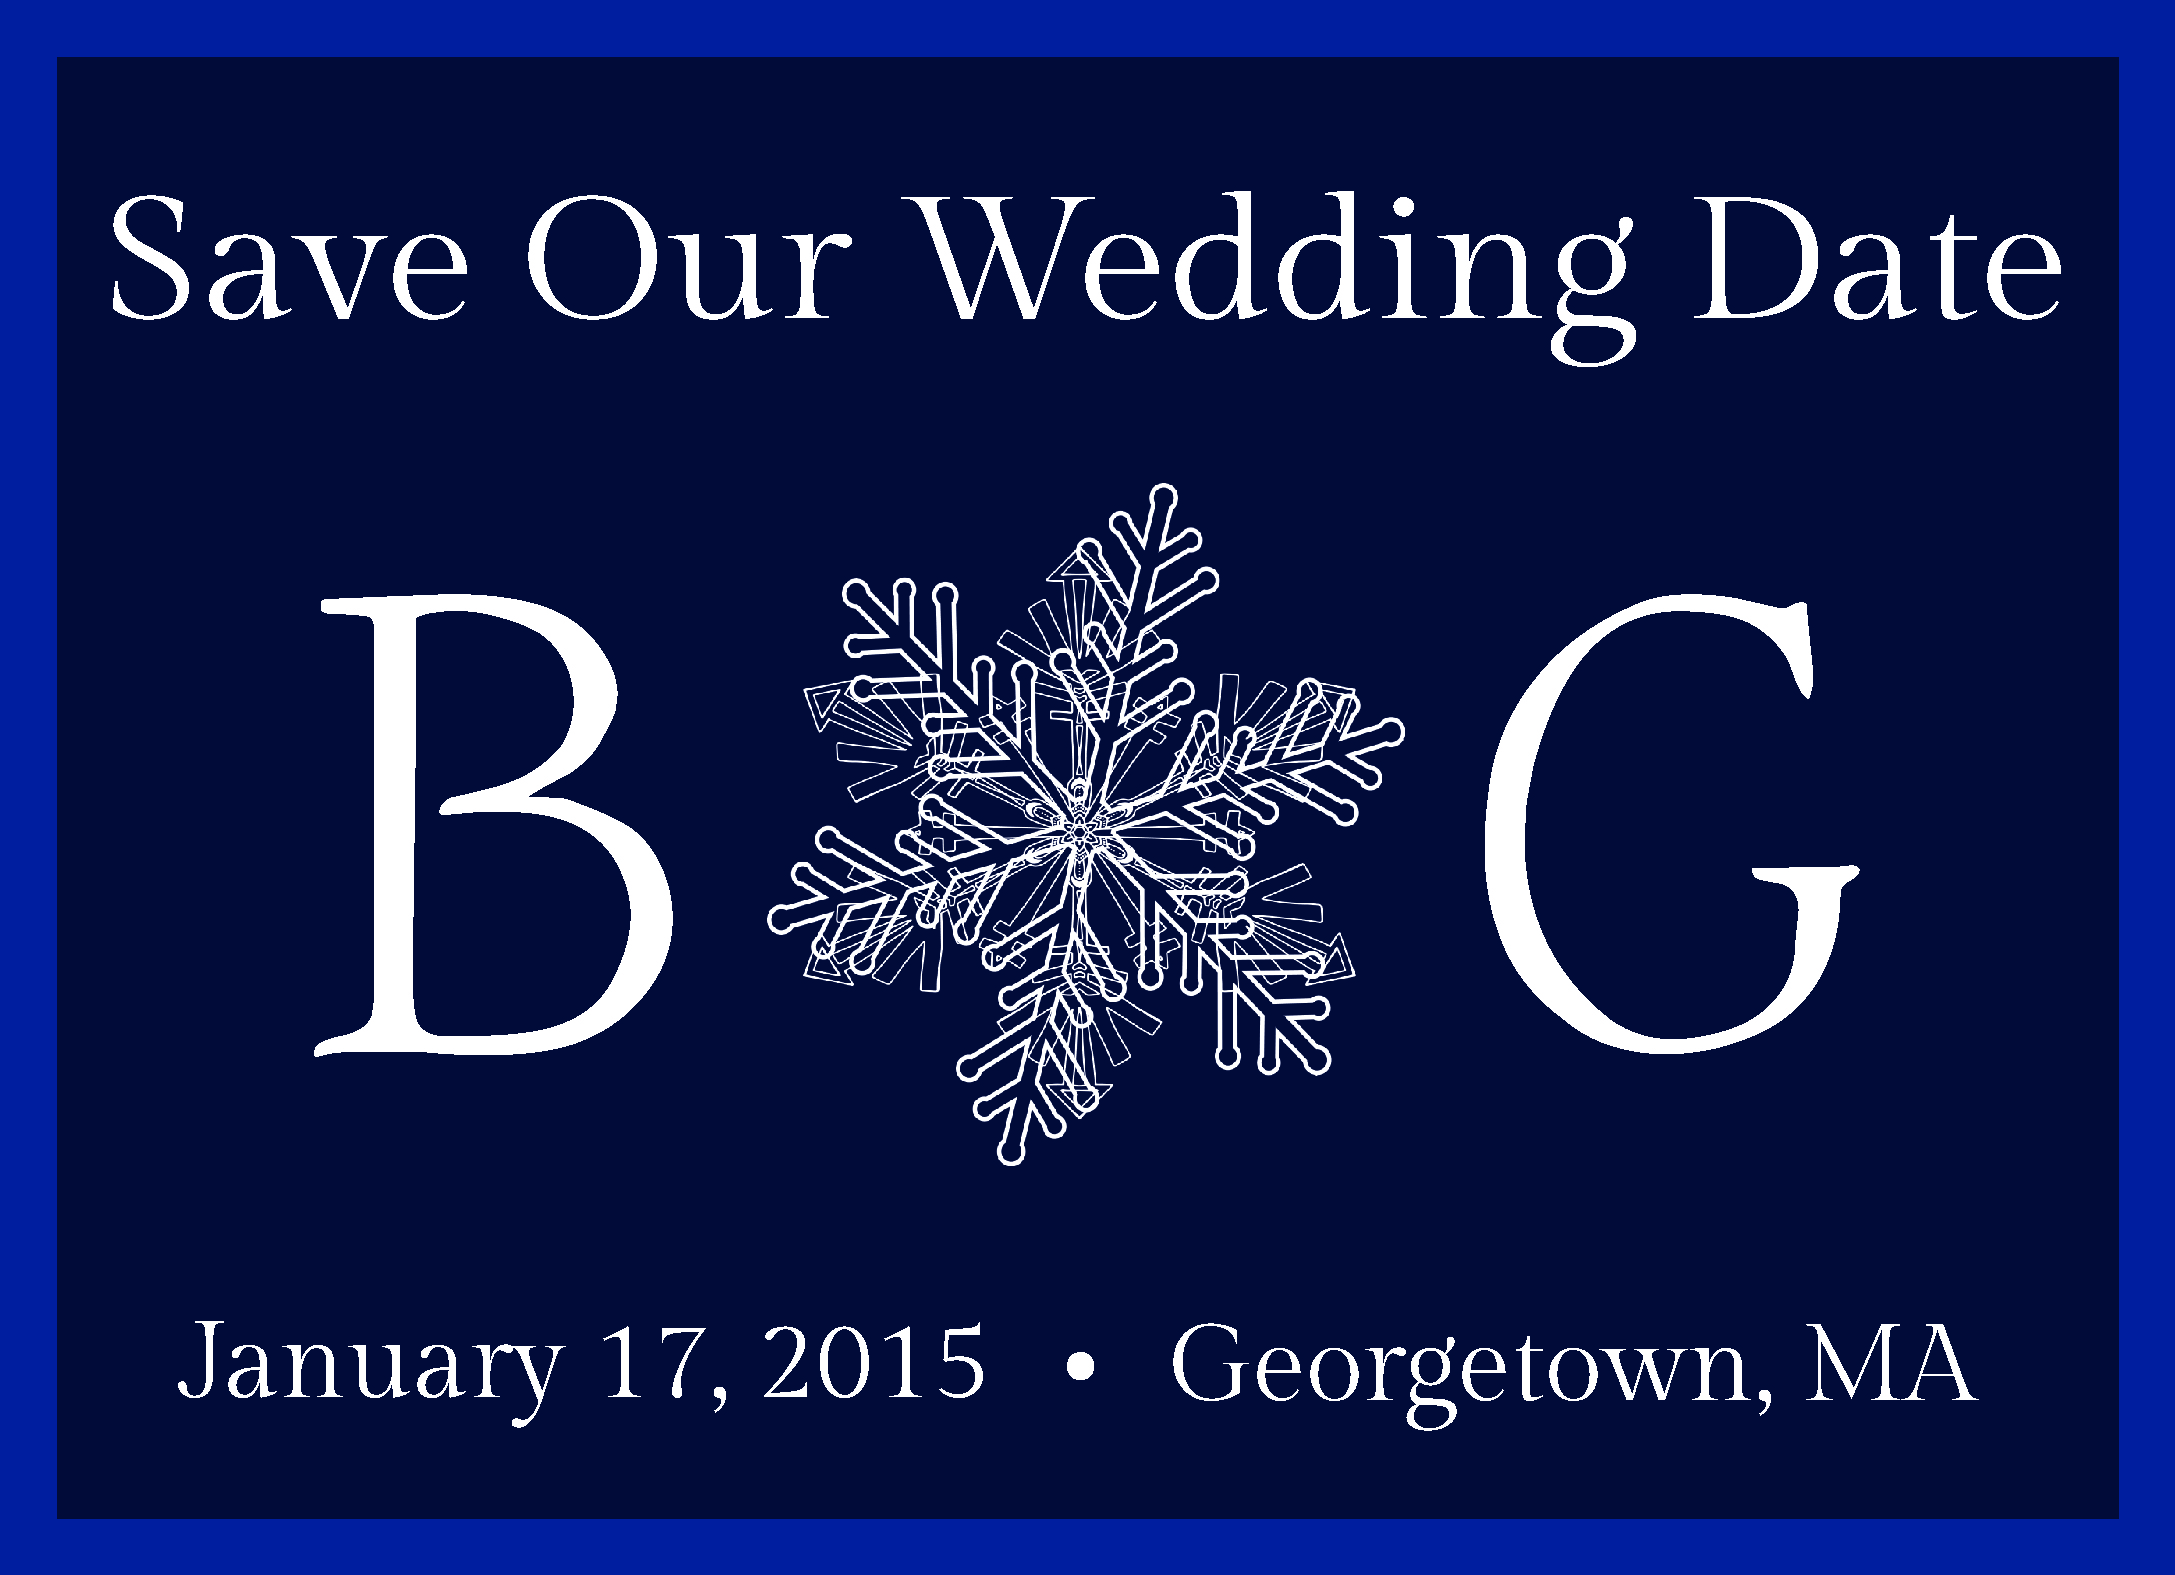 B&G Save The Date Snow Flake new font-01.jpg